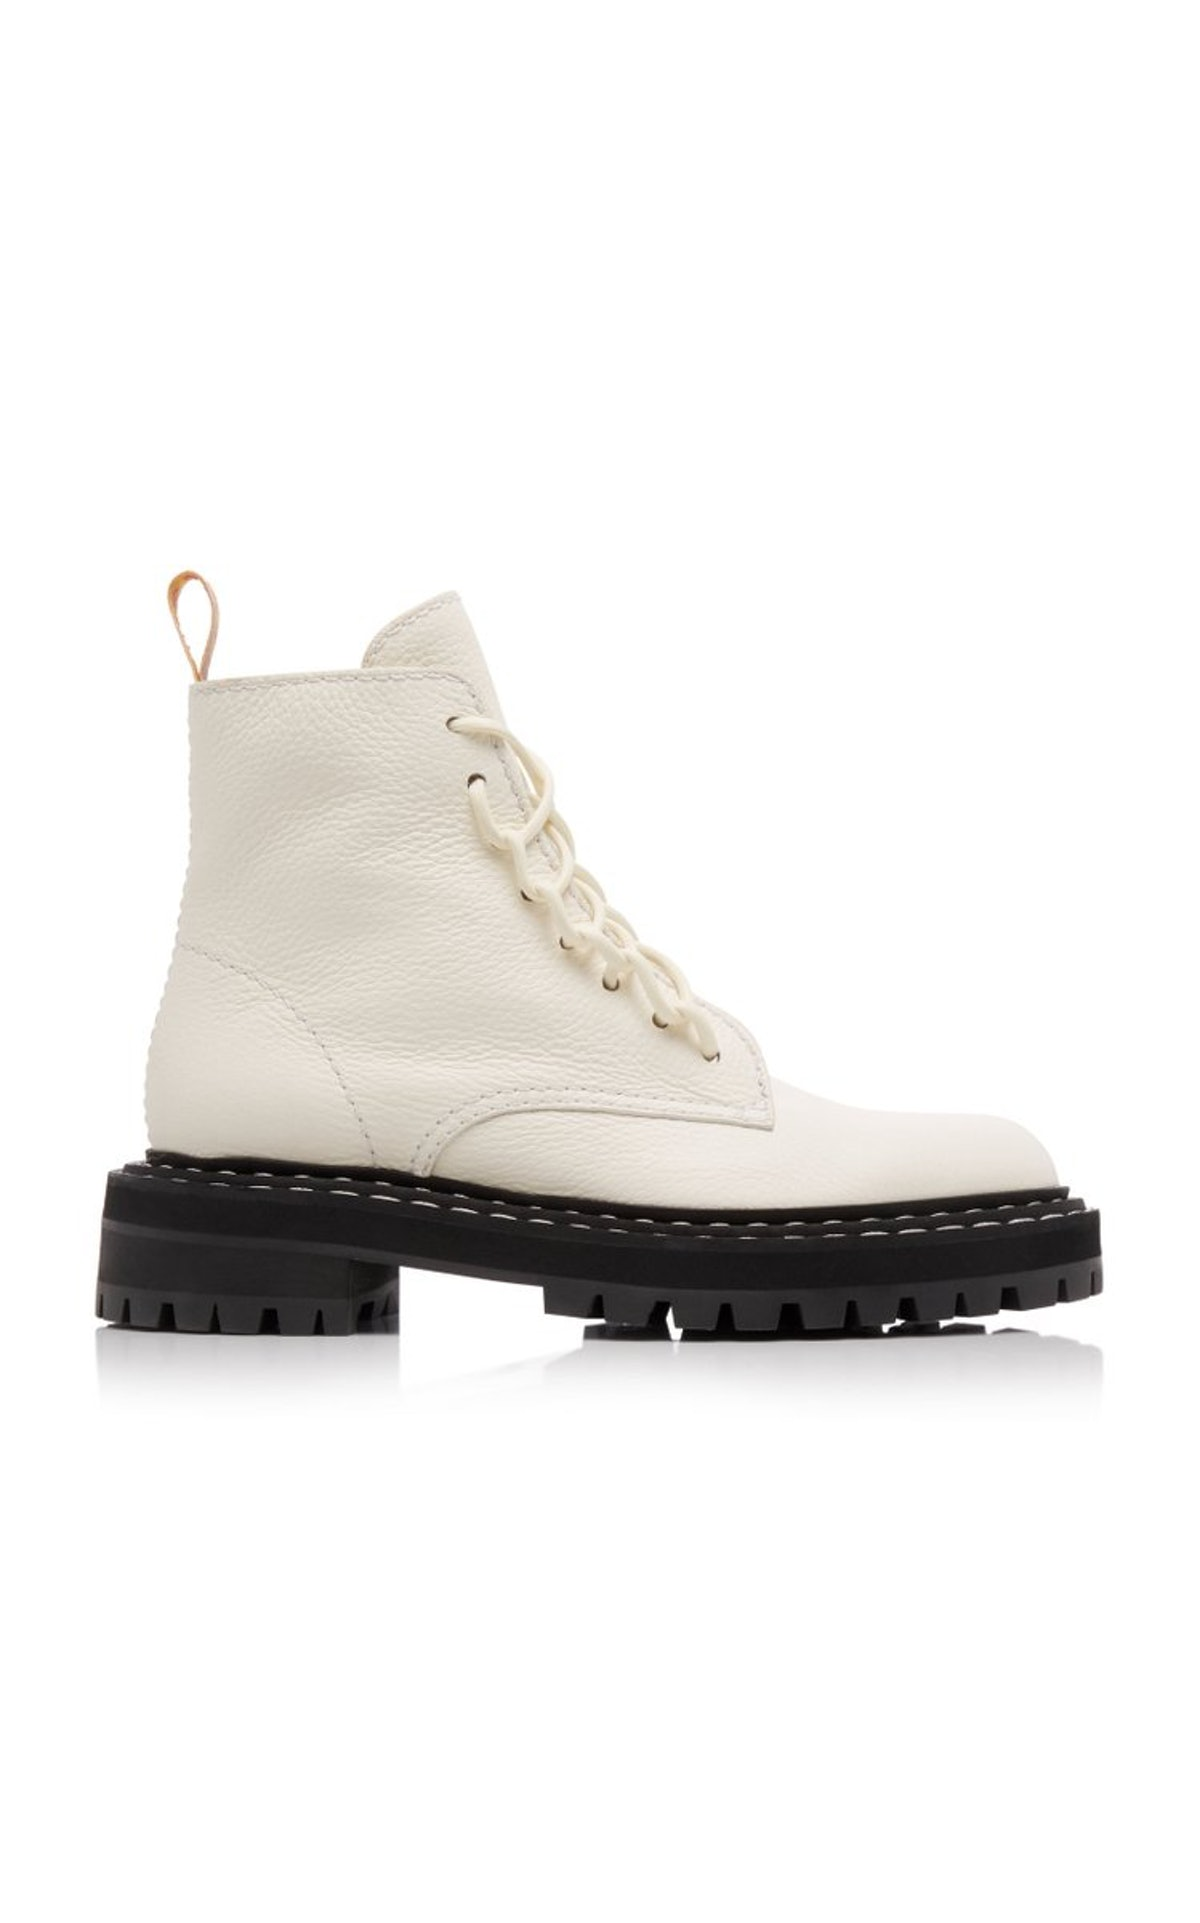 White leather combat boots from Proenza Schouler, available to shop on Moda Operandi.